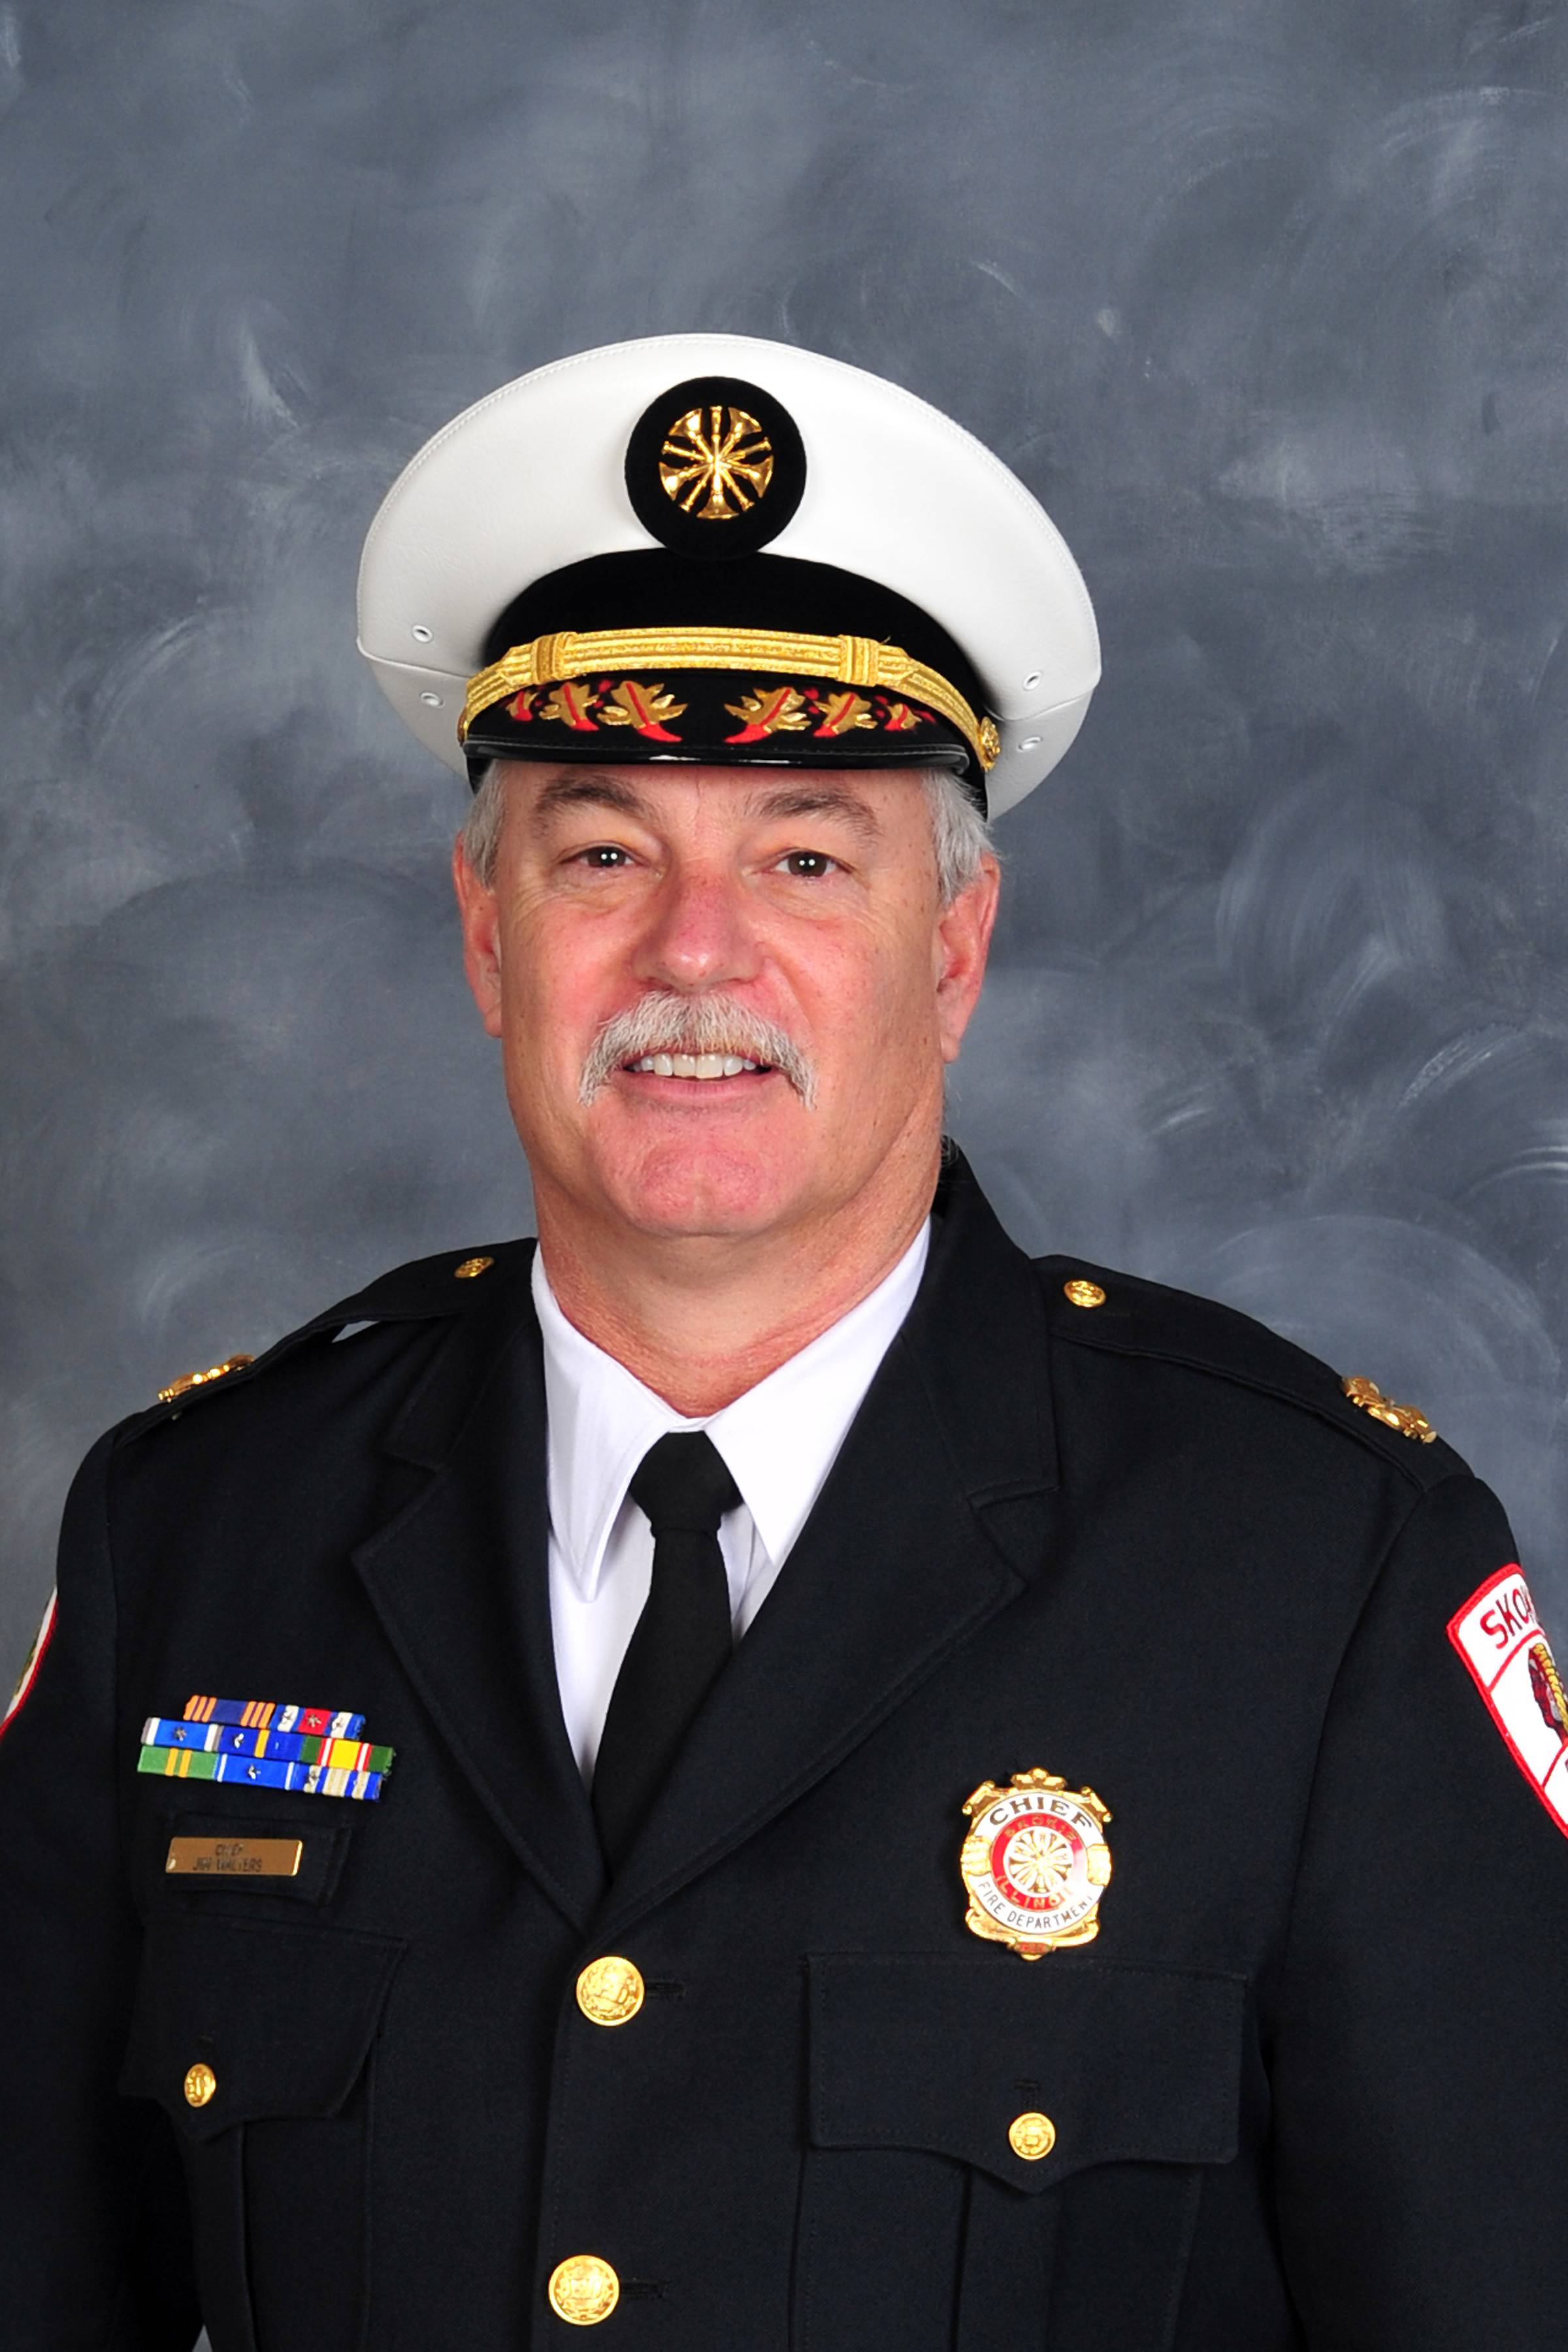 Village of Schaumburg Announces James G. Walters as New Fire Chief